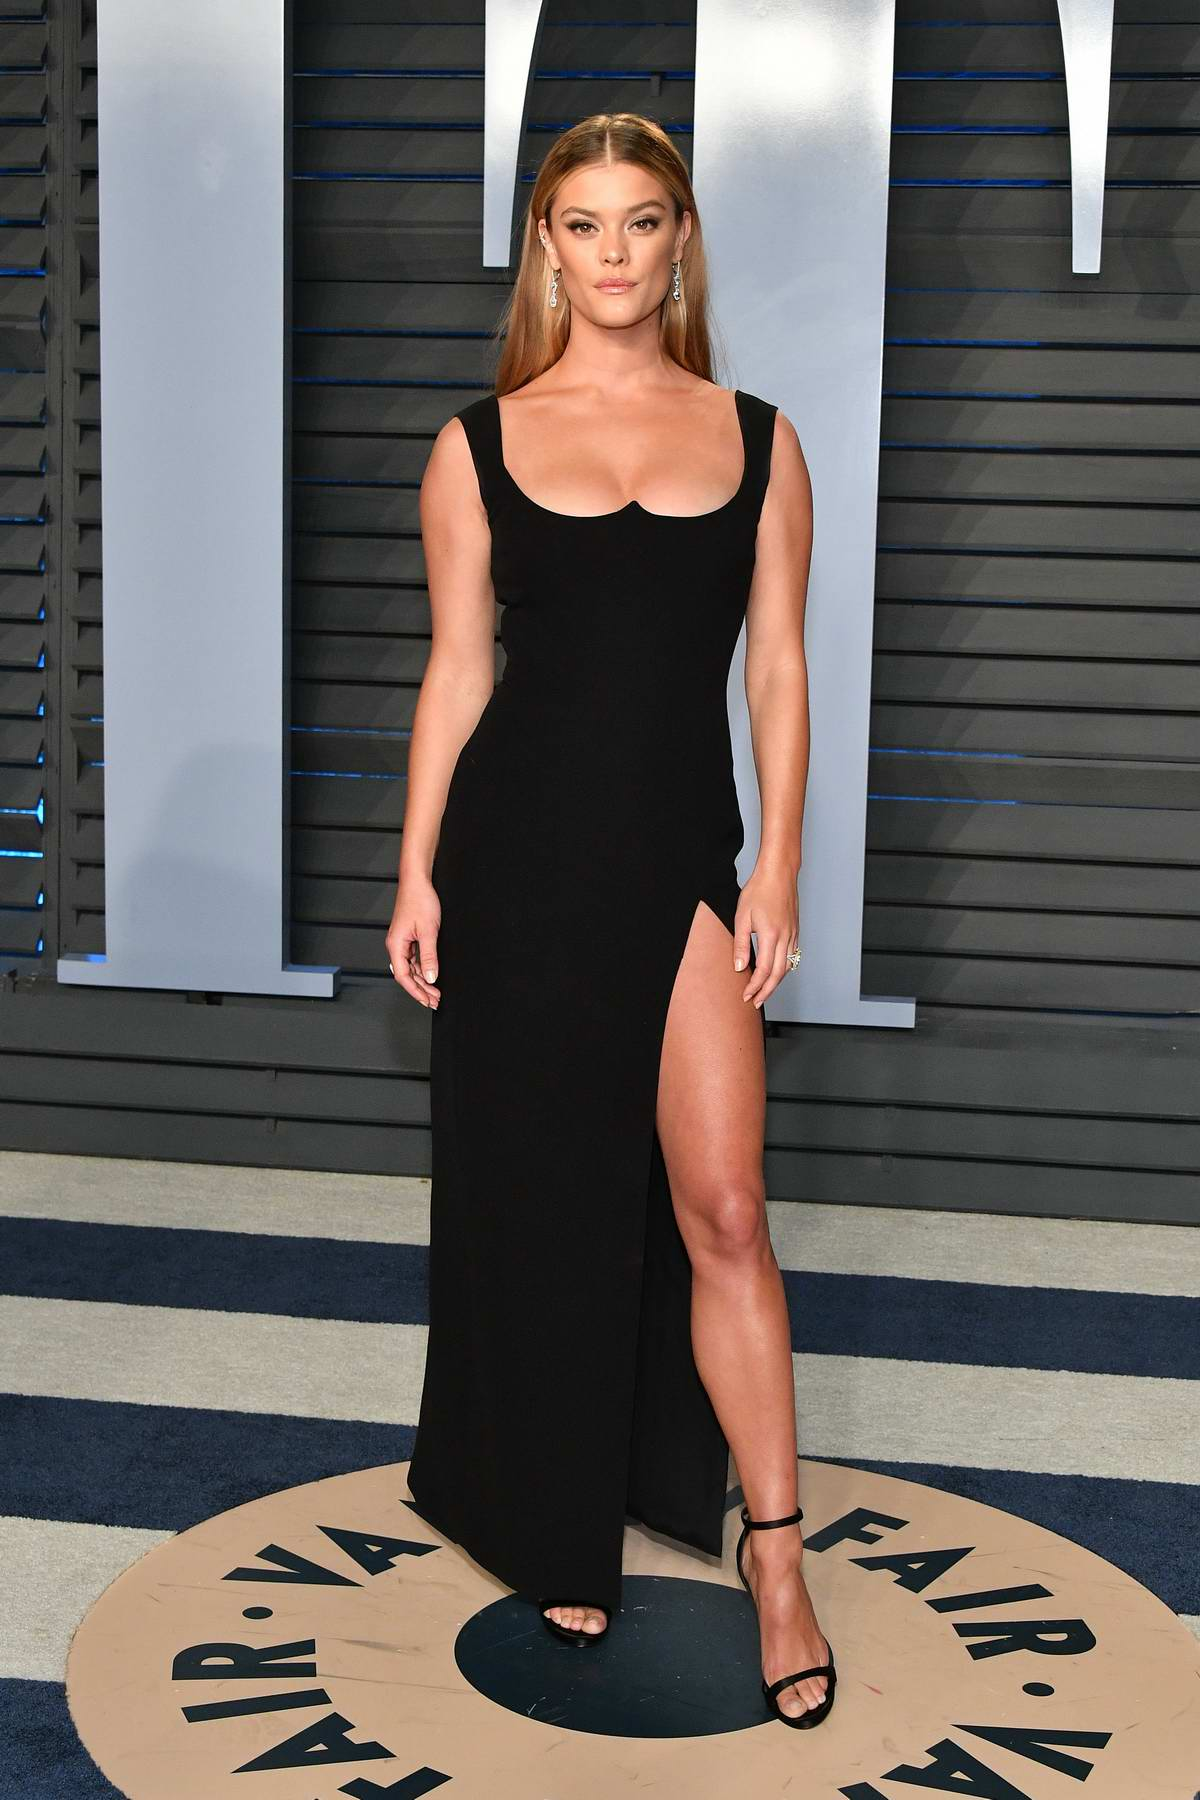 Nina Agdal attends 2018 Vanity Fair Oscar Party at the Wallis Annenberg Center for the Performing Arts in Beverly Hills, Los Angeles